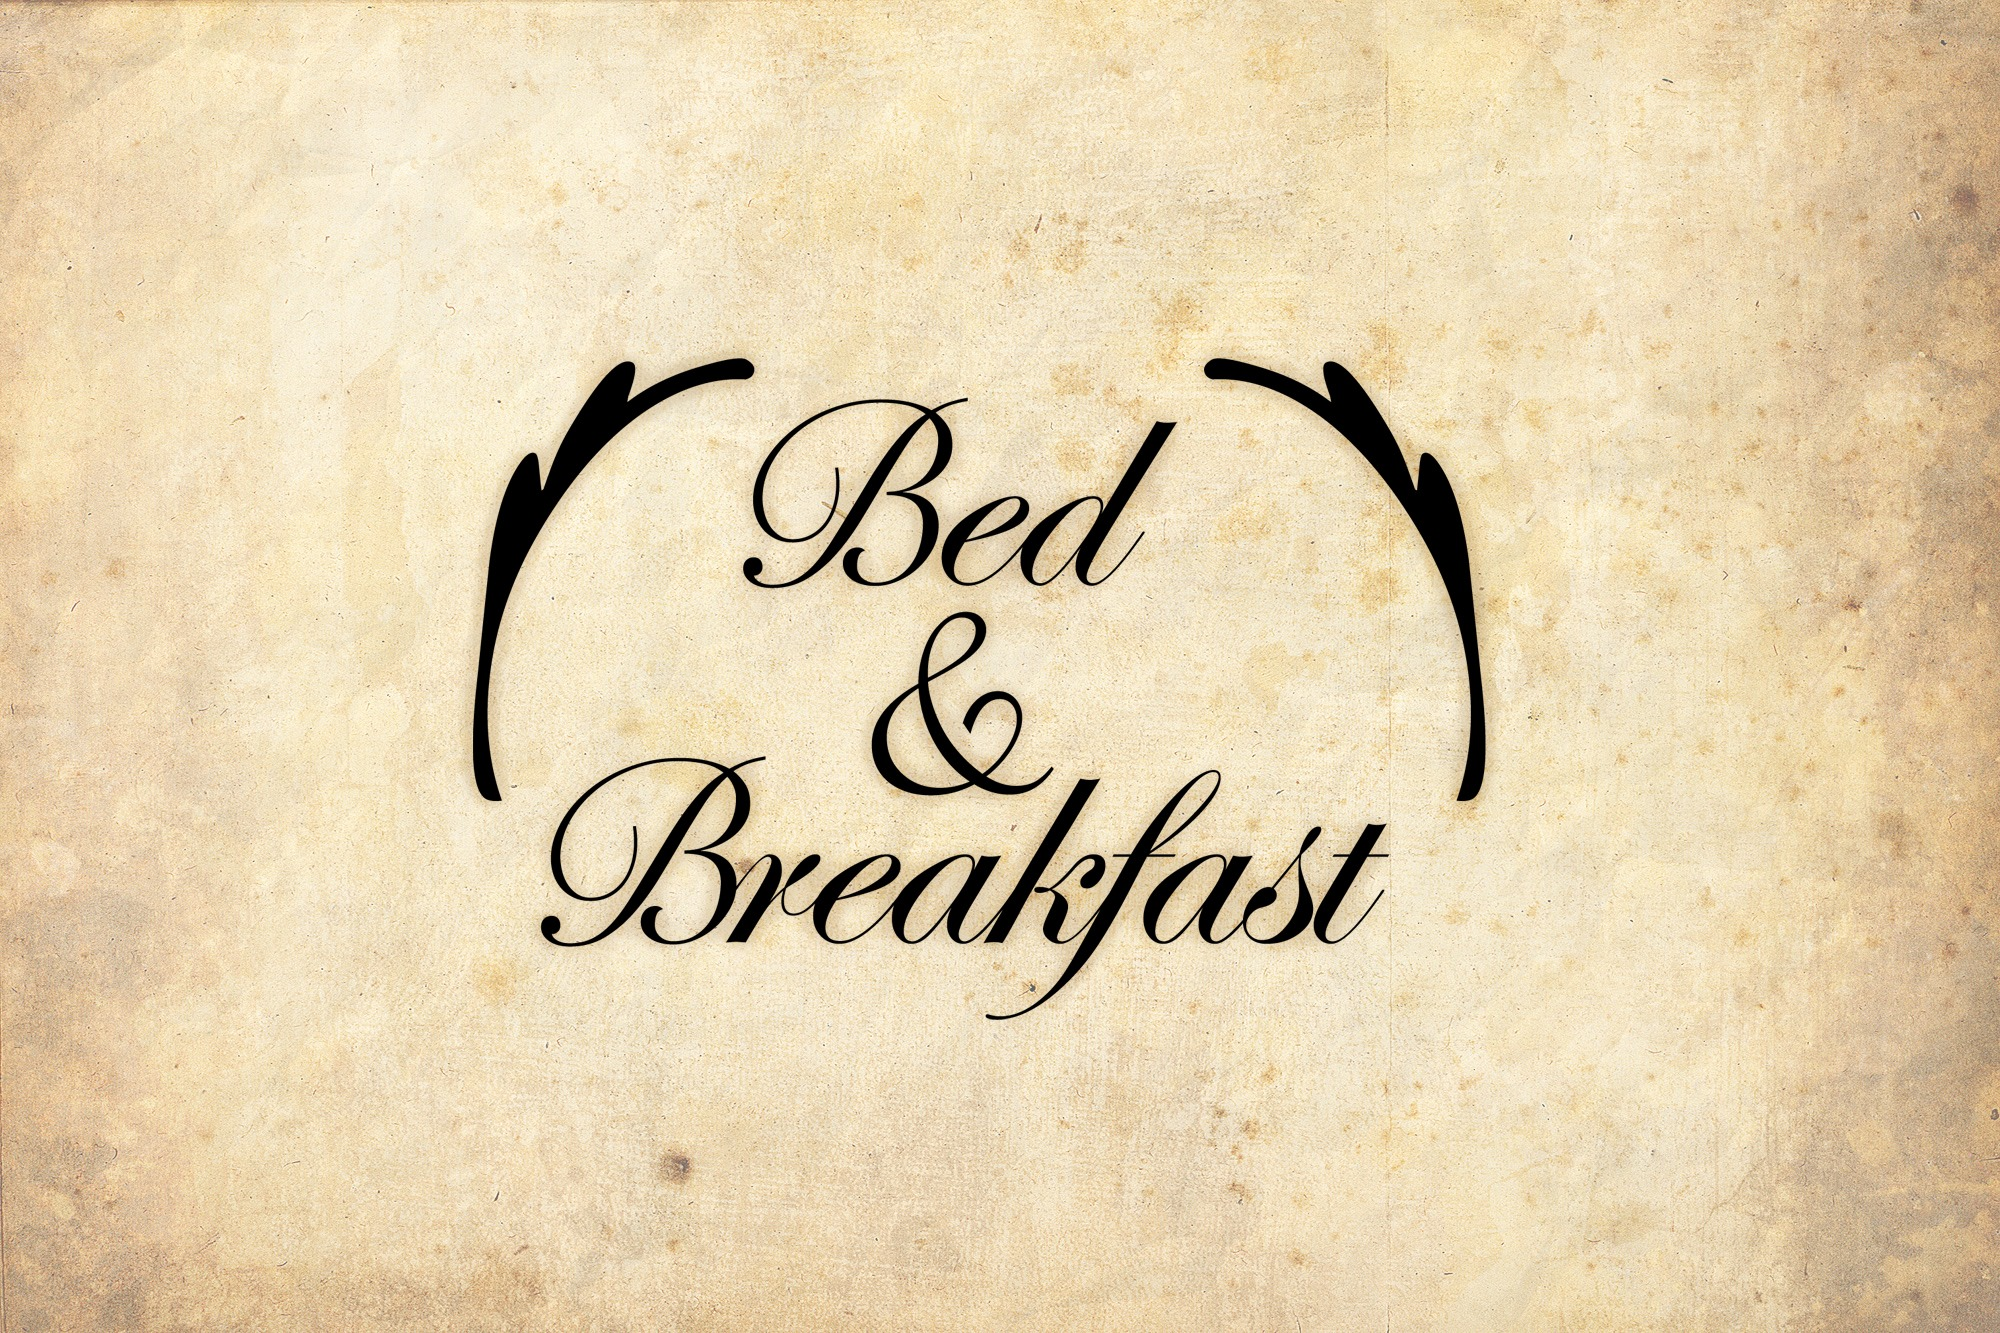 Bed-Breakfast-Omroep-MAX.jpg